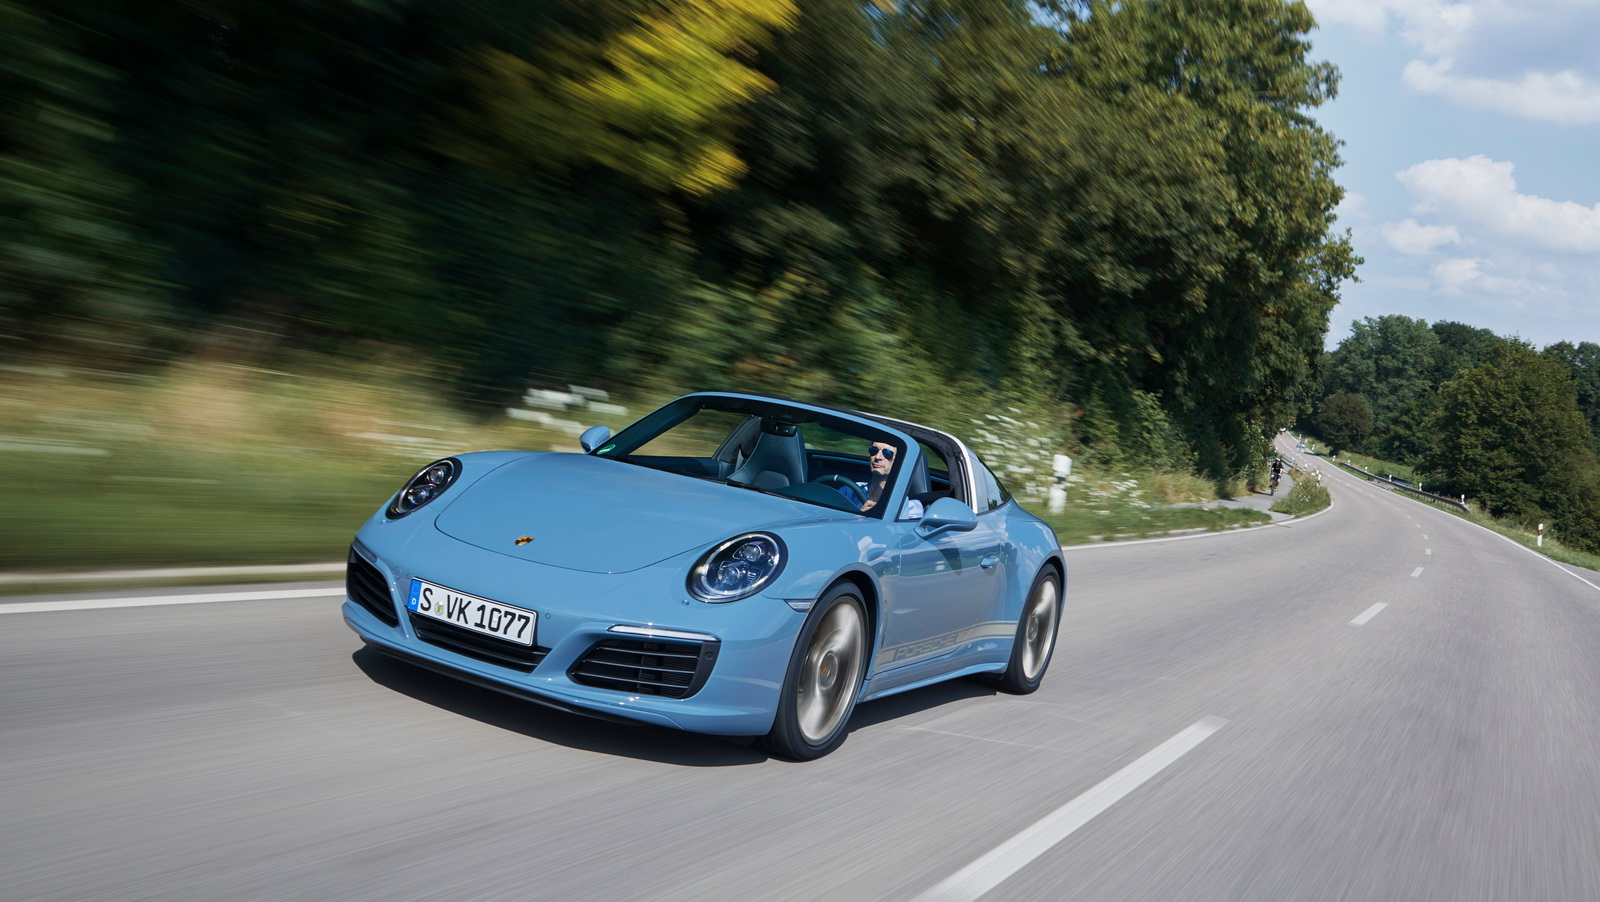 Porsche 911 991.2 Exclusive Design Edition Targa 4S blauw 01